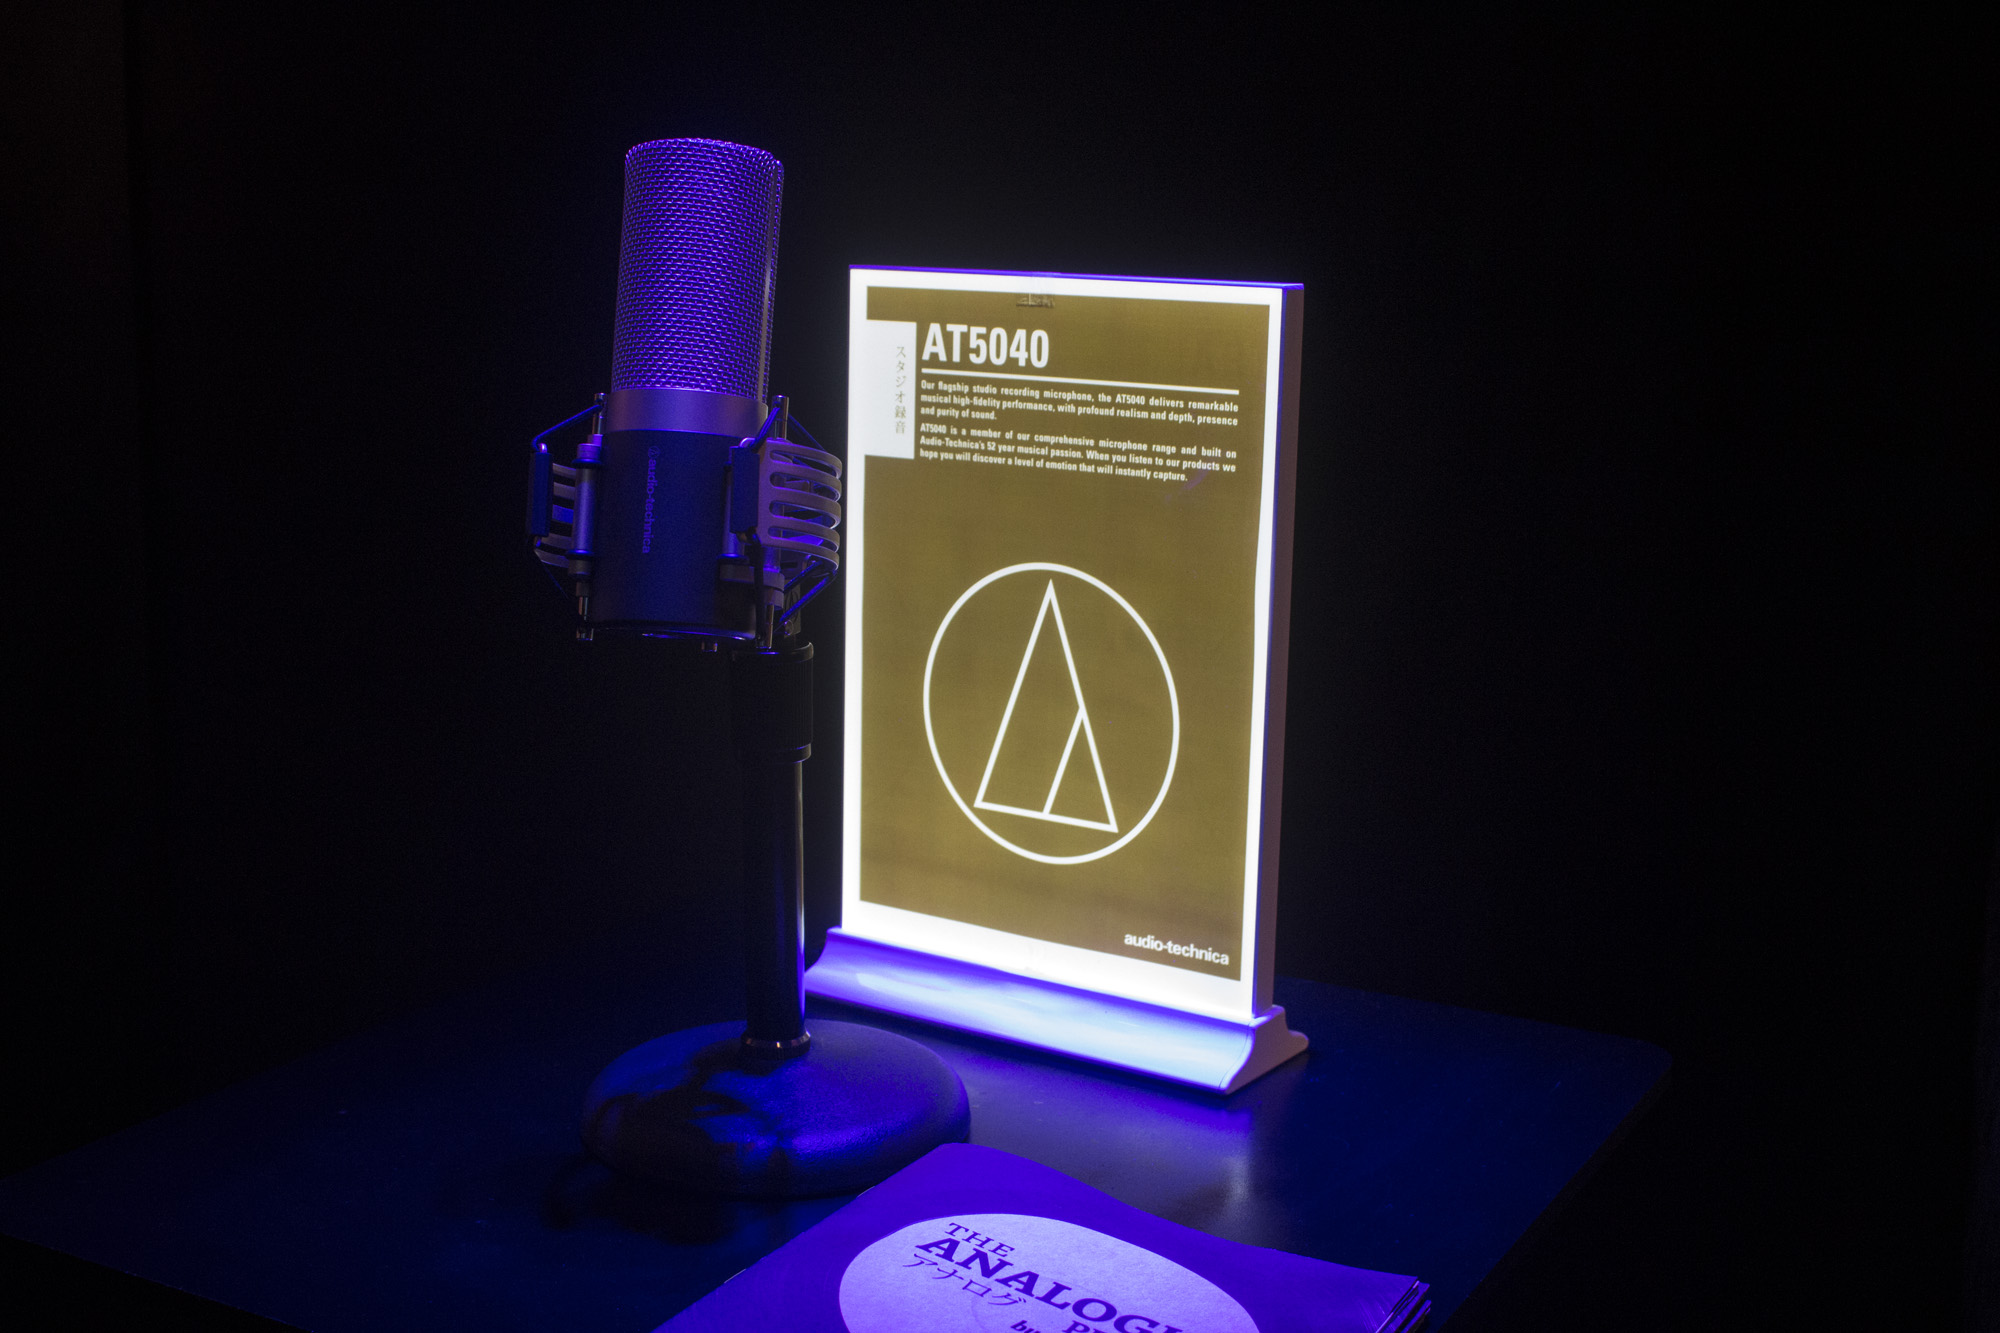 Glowpro at Audio Technica Pop-Up